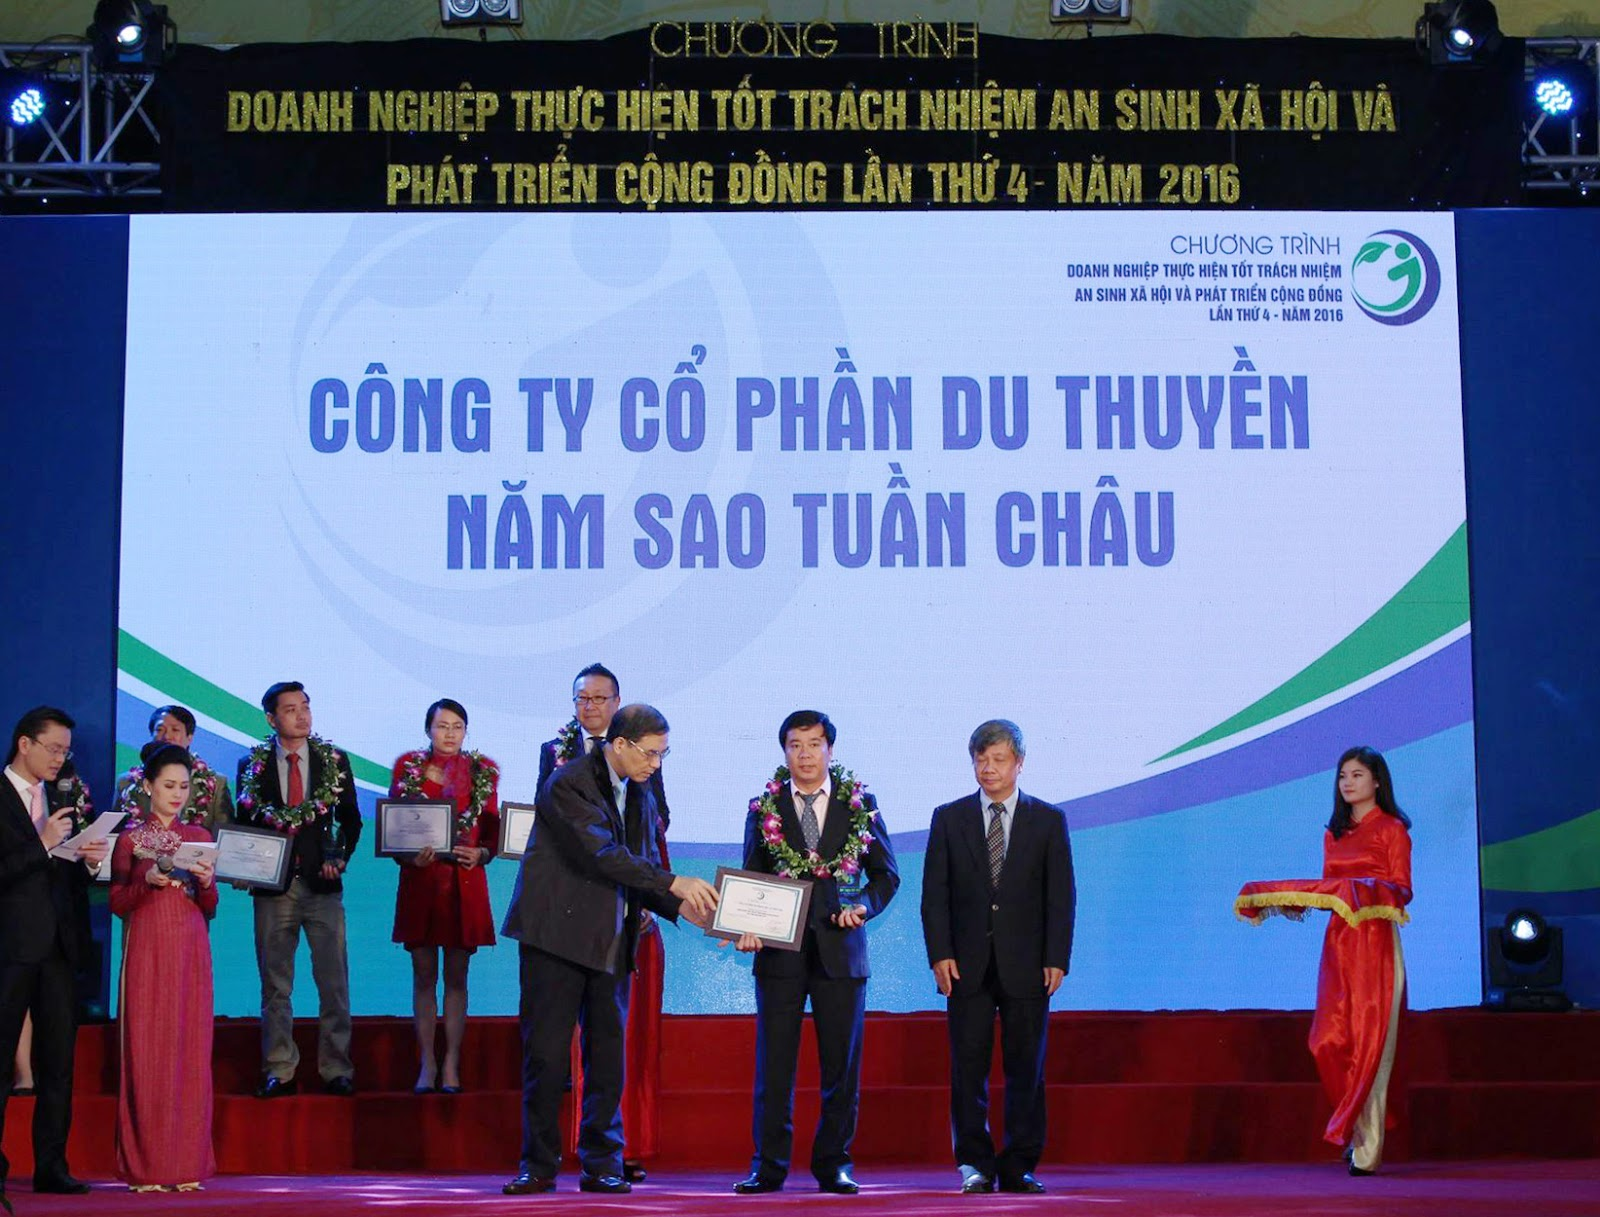 Wanderlust Tips Magazine   Paradise Vietnam was awarded for excellent contribution to social welfare